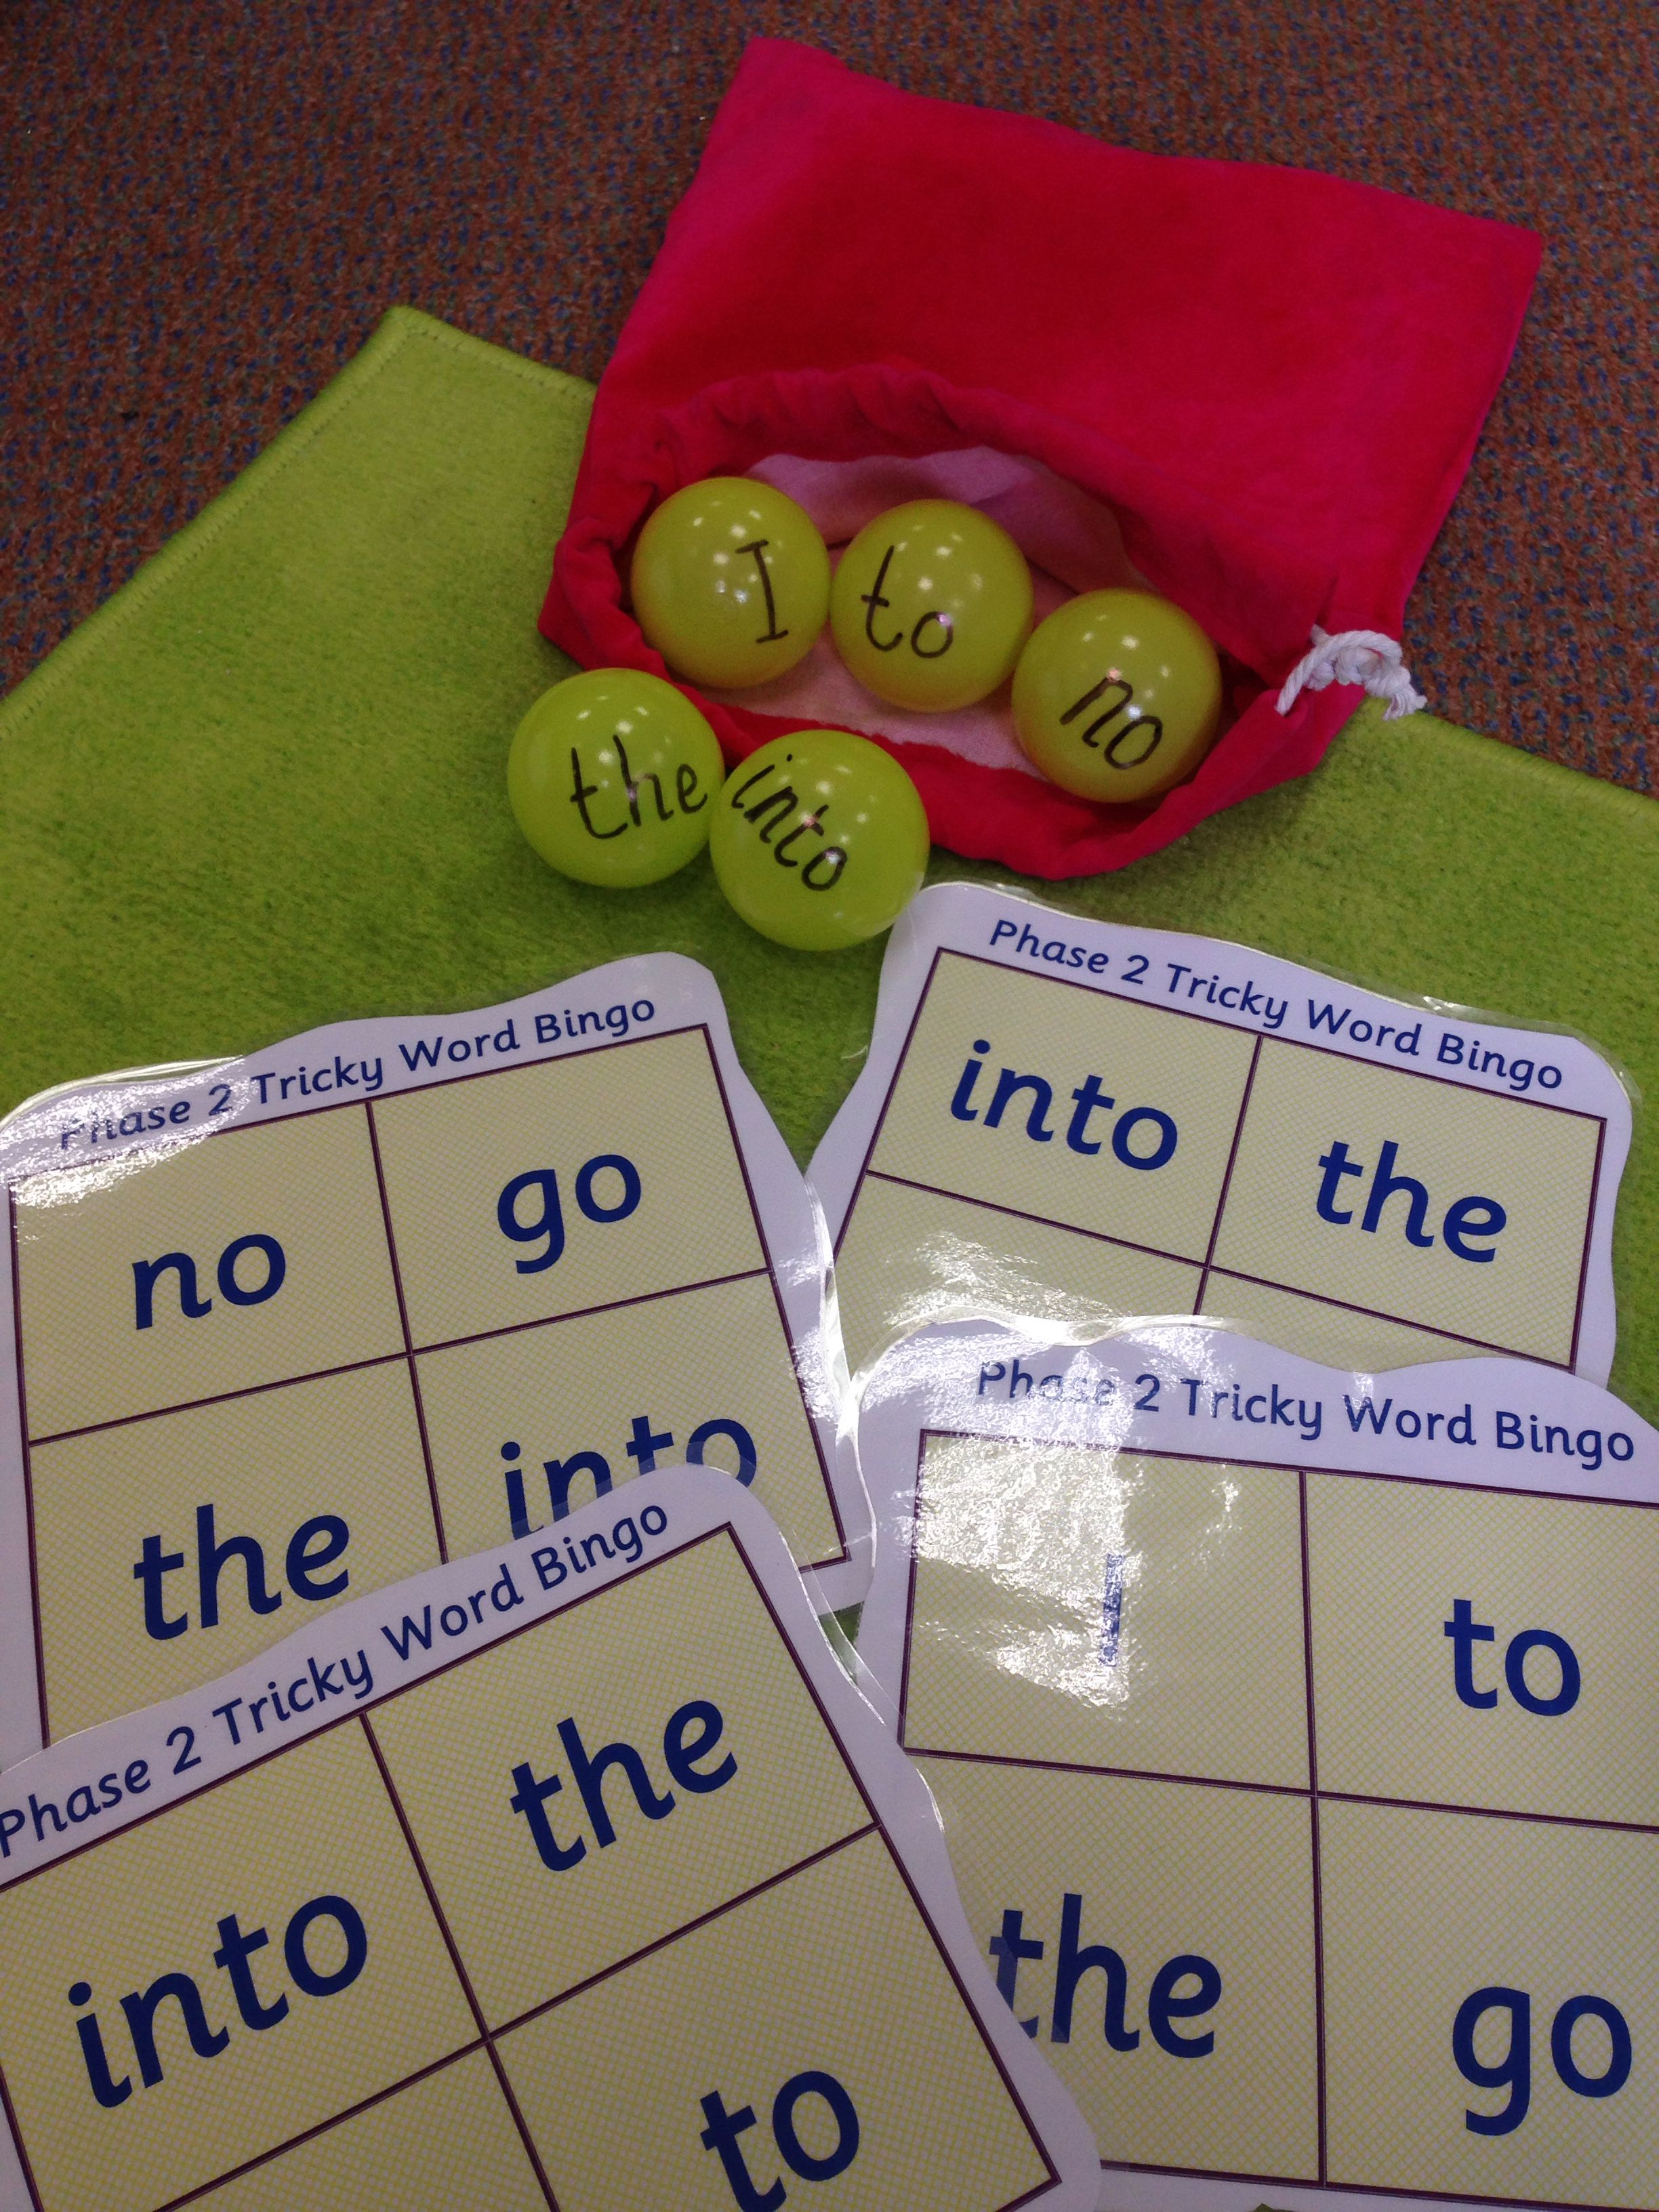 Phase 2 Tricky Word Bingo Game Tricky Words Phonics Games Phonics Activities Phonics reading activities phase 2